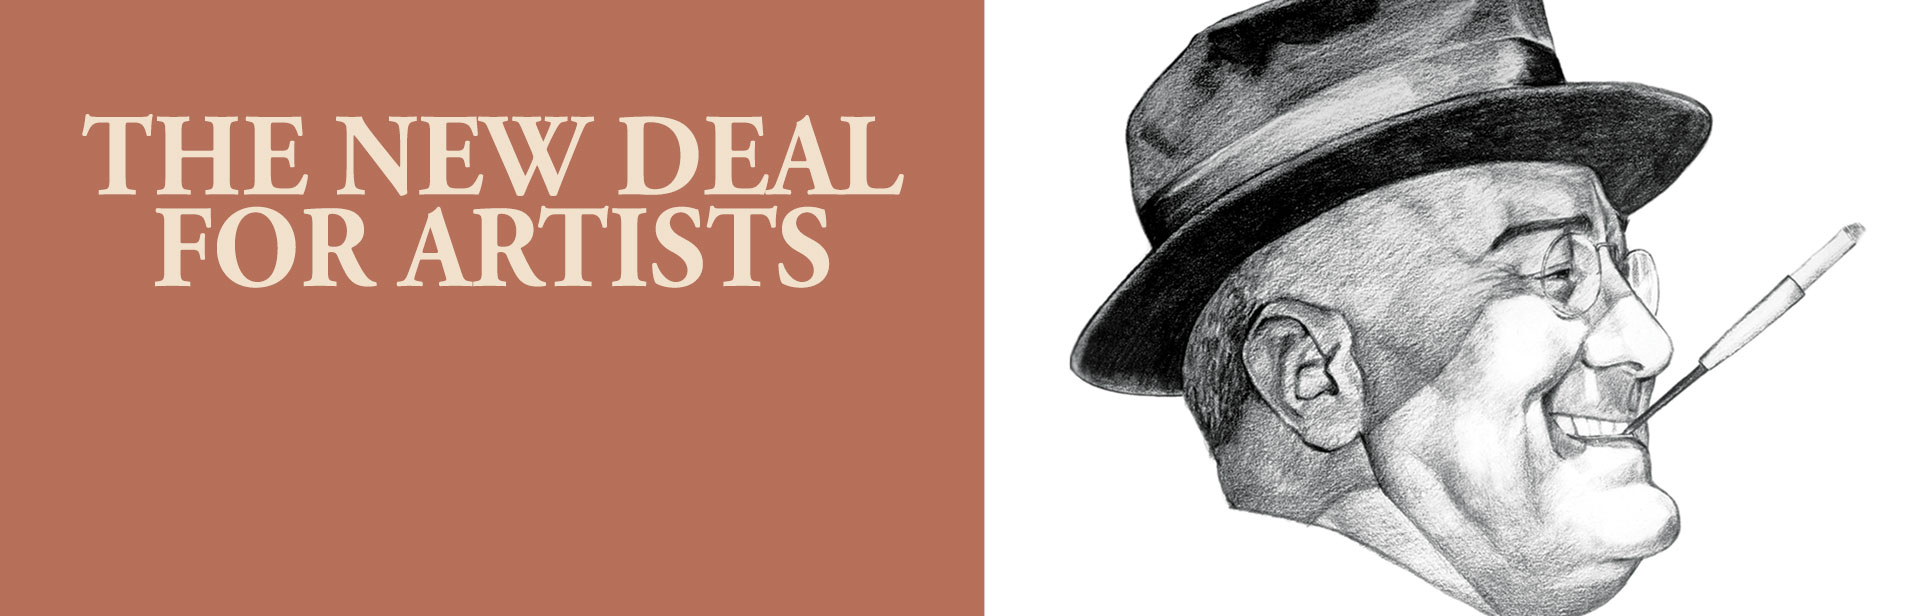 The New Deal For Artists banner